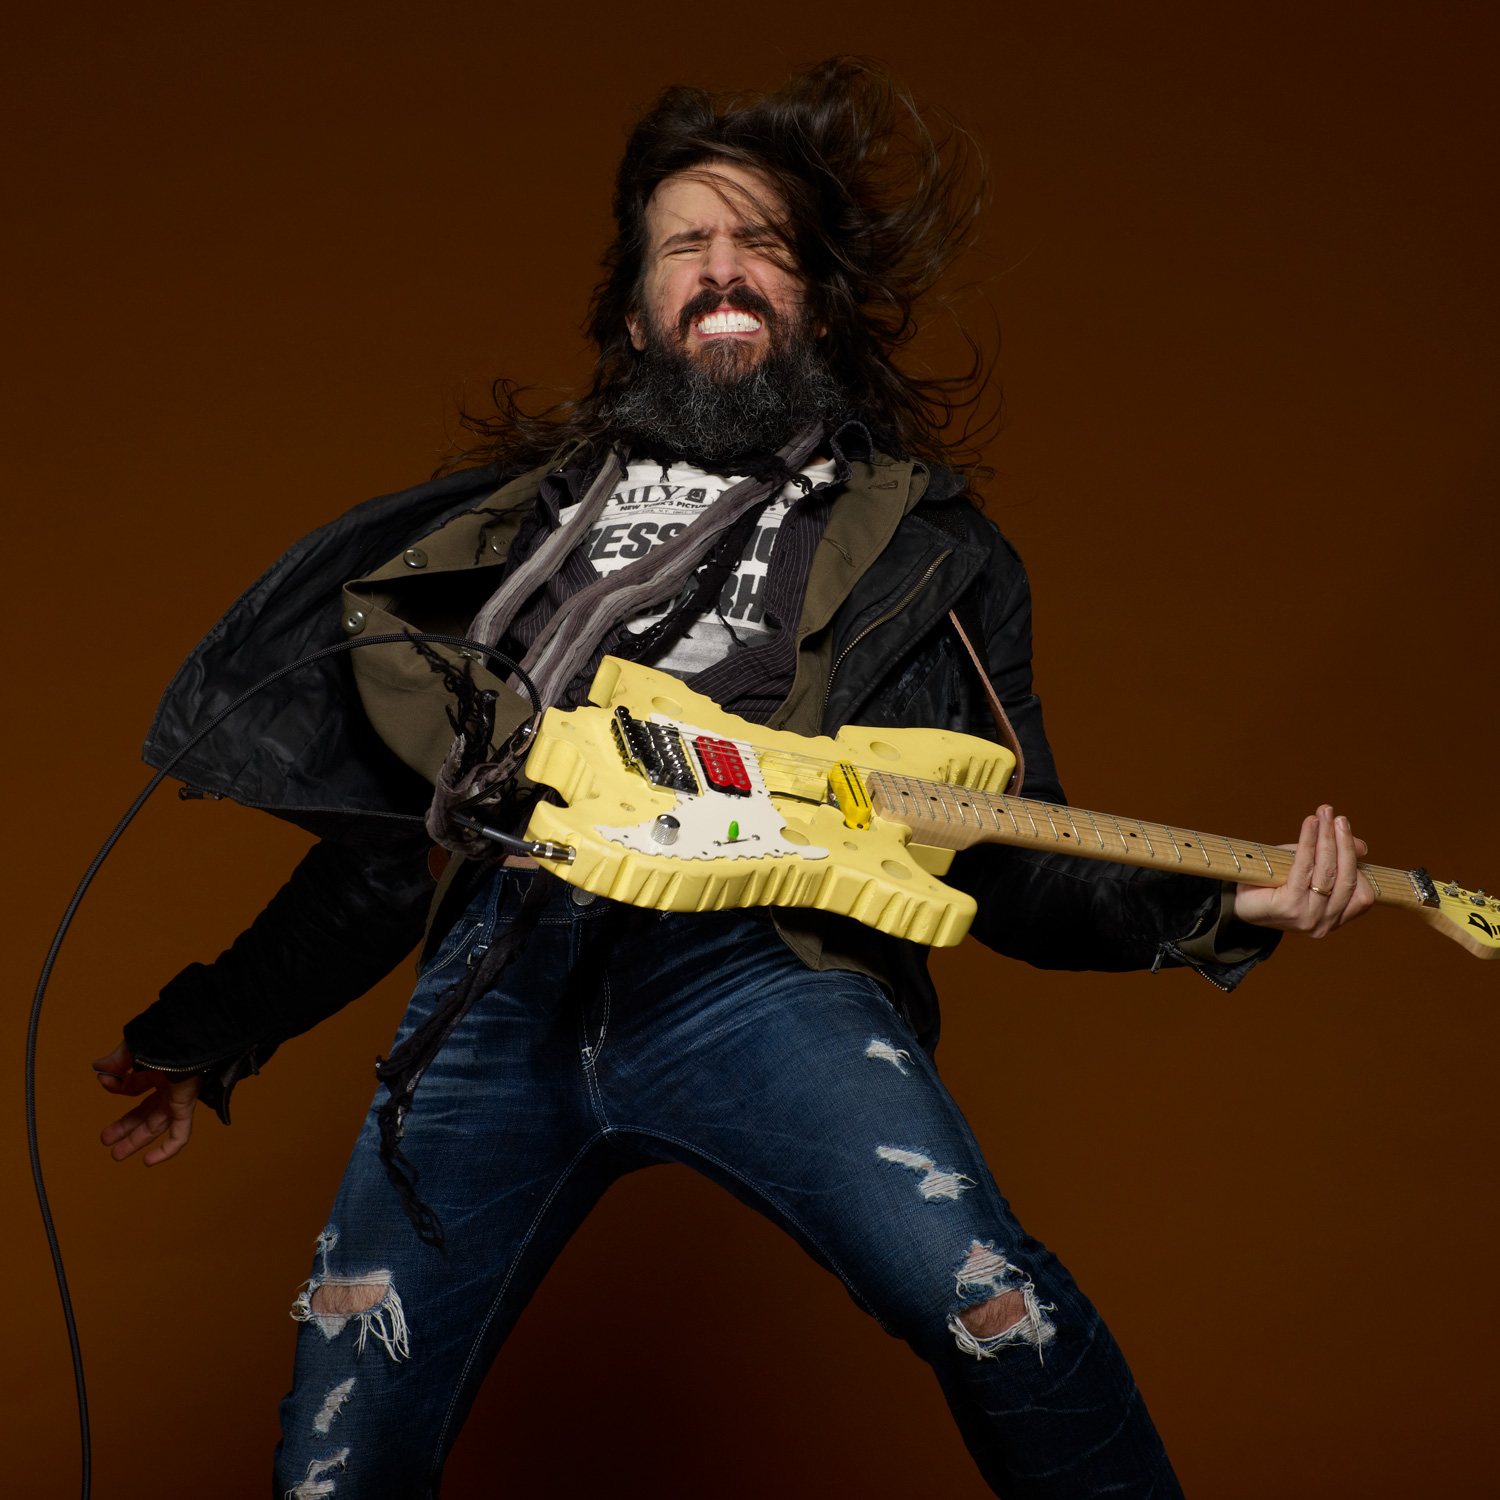 Ron Thal photo by Larry DiMarzio